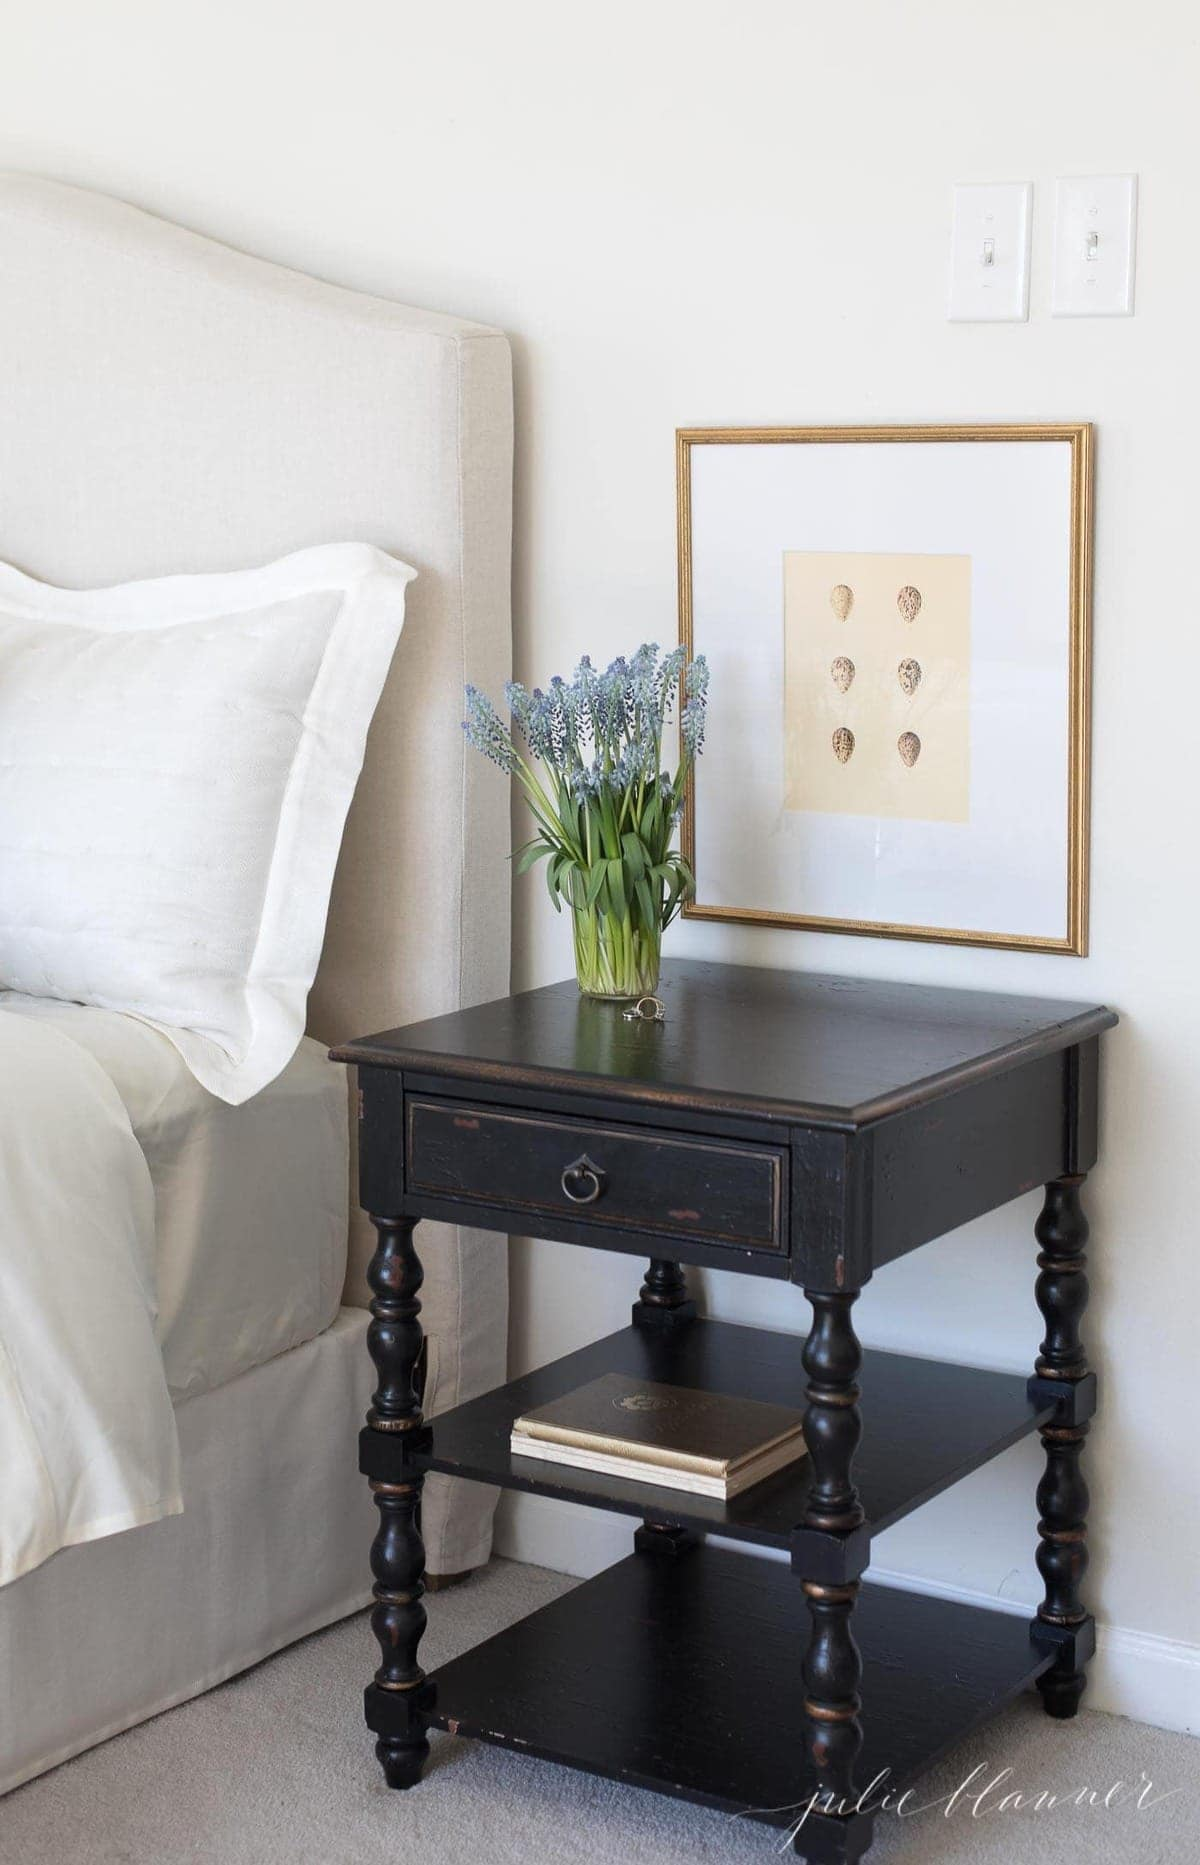 art over nightstand for a simple easter decorations idea